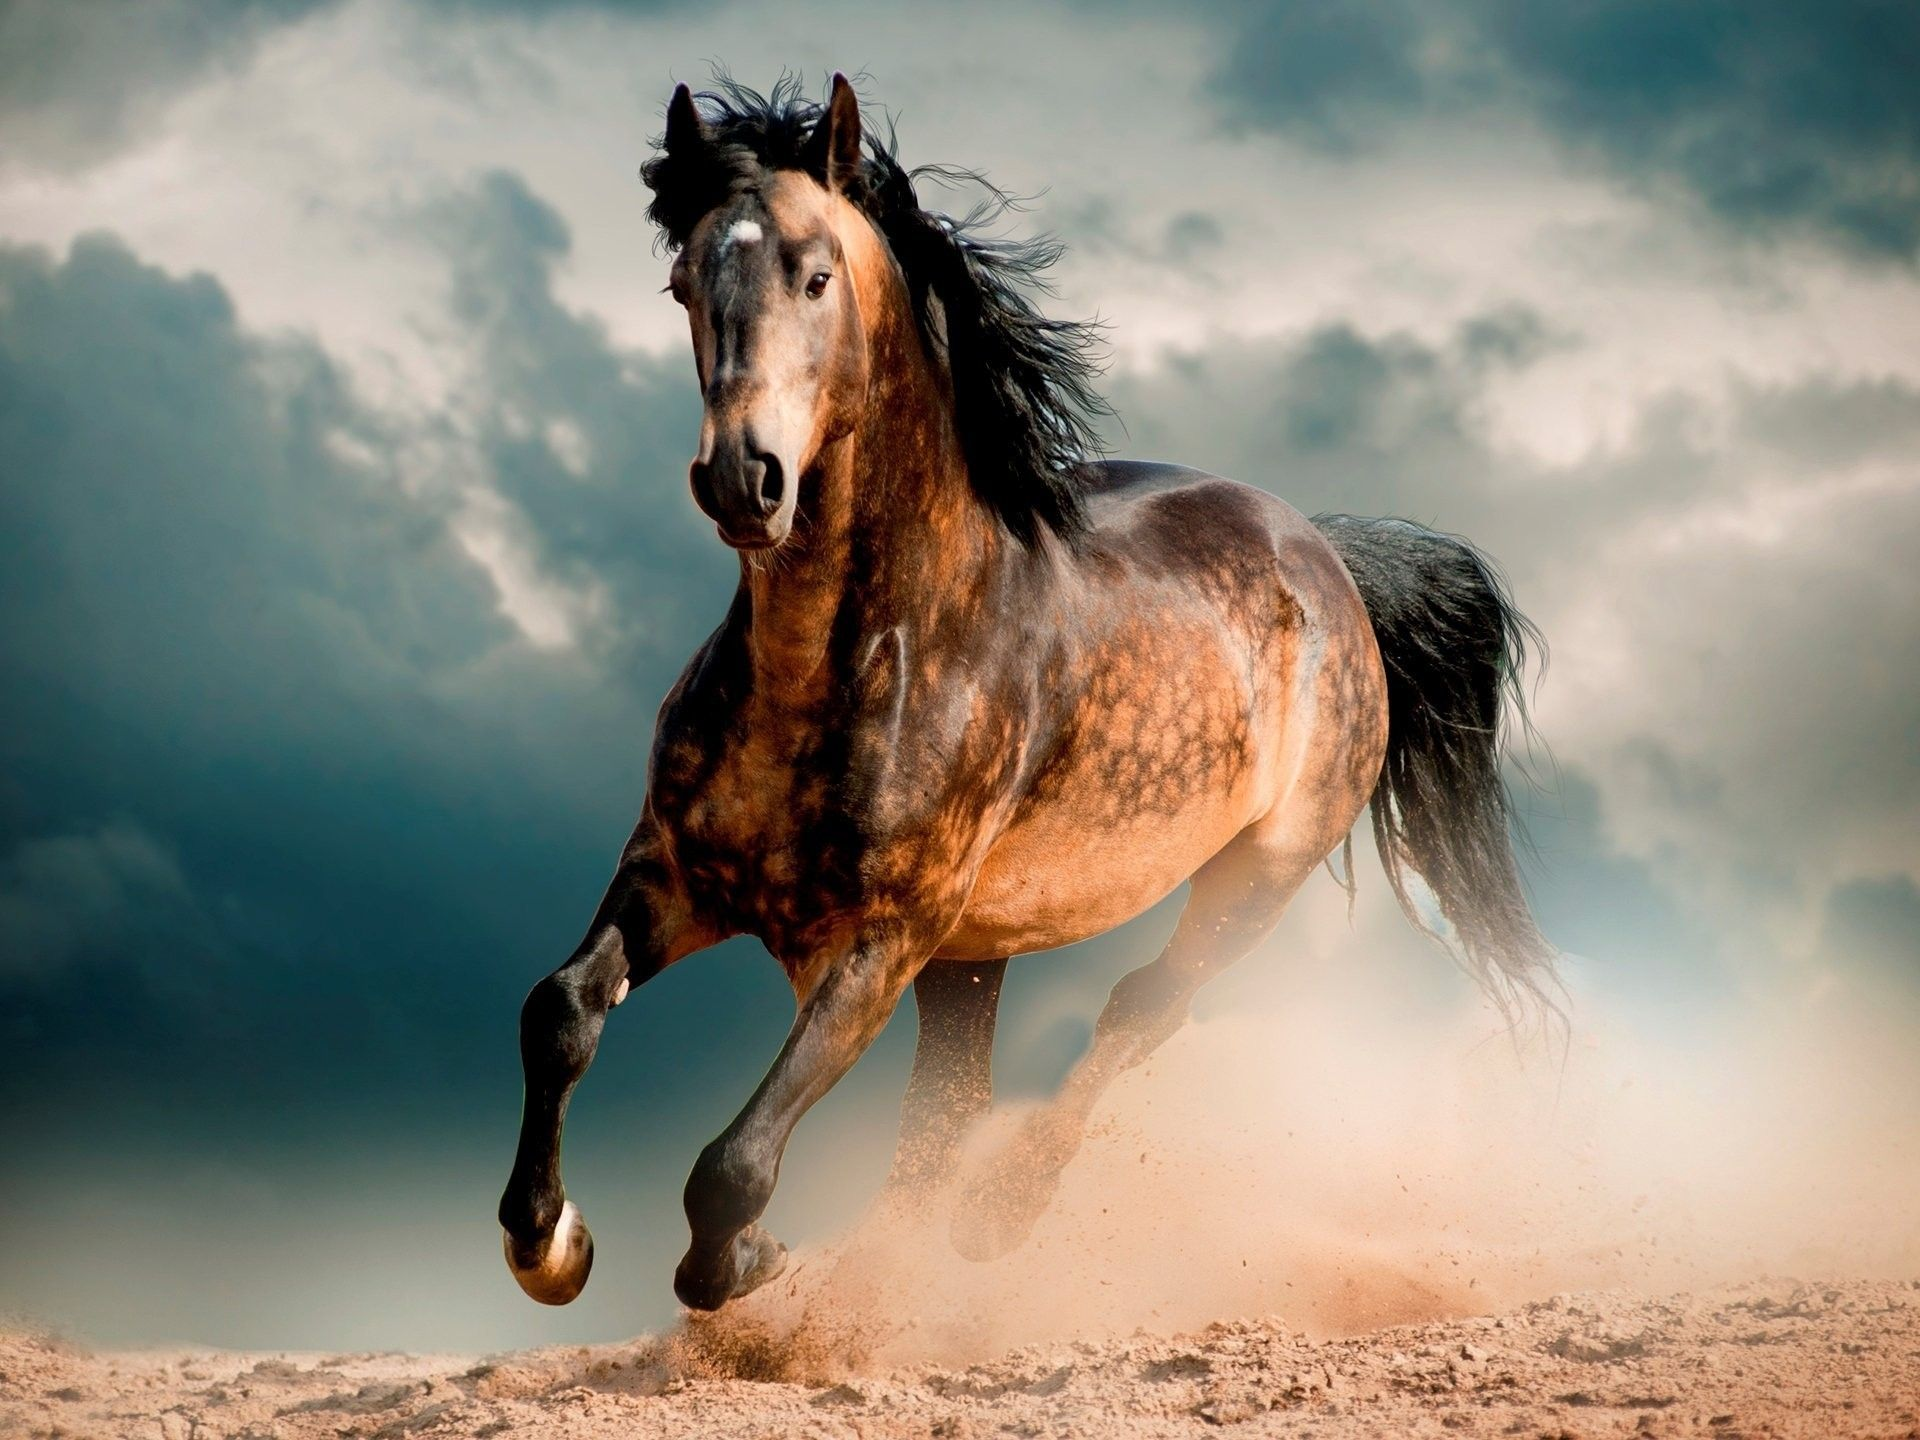 Mustang Horse Wallpapers Top Free Mustang Horse Backgrounds